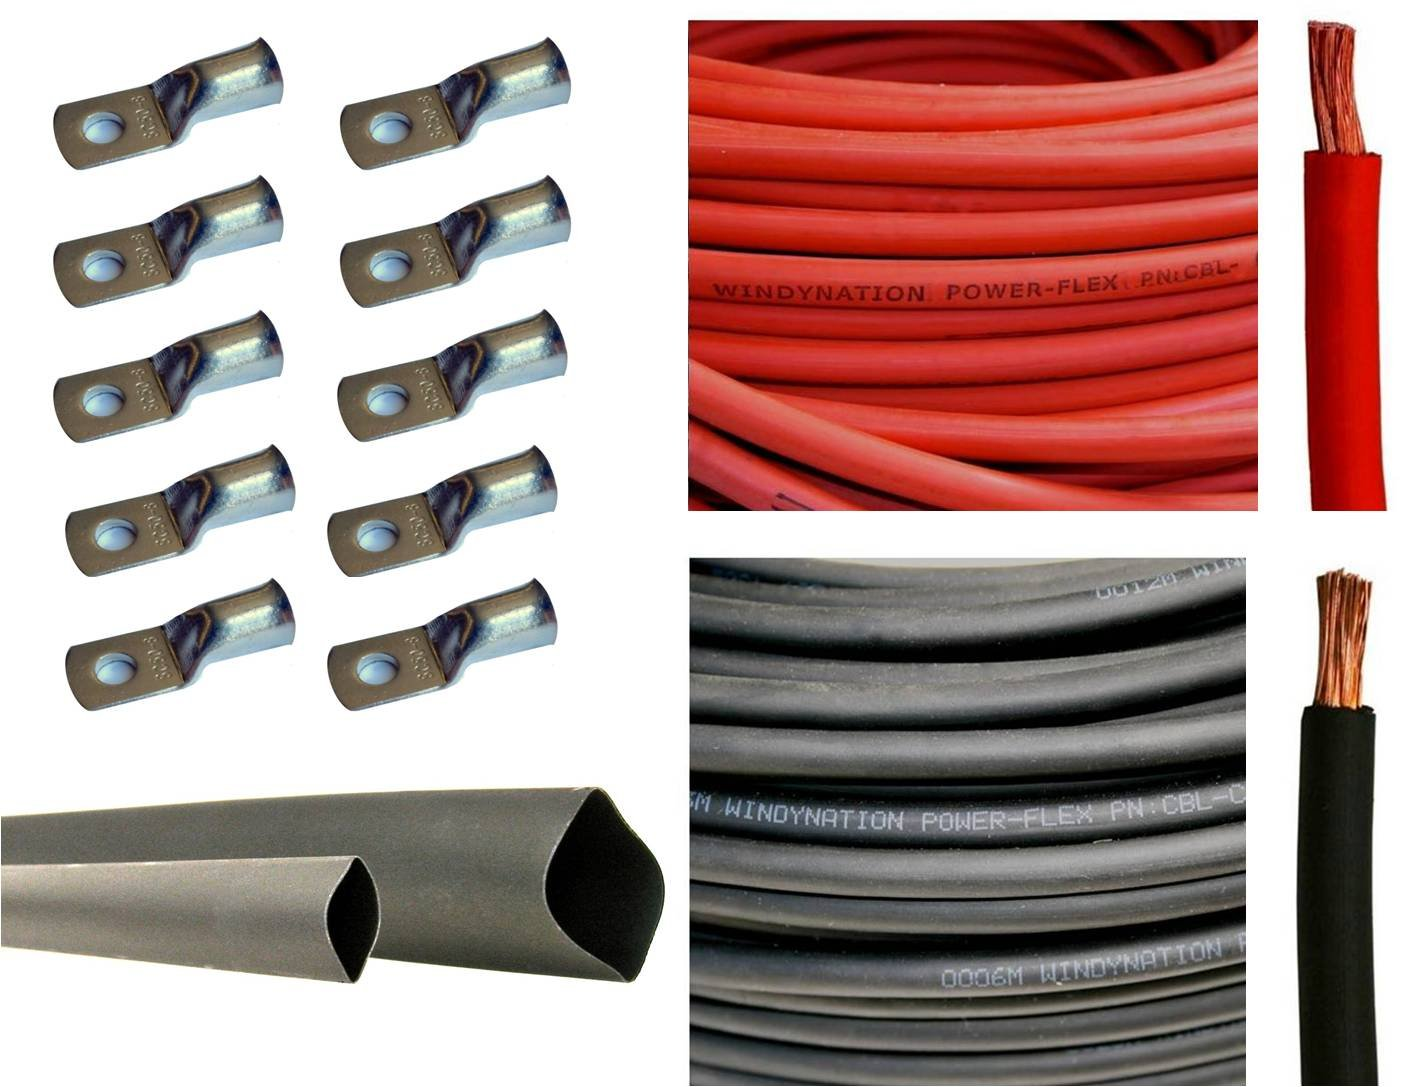 6 Gauge 6 AWG 10 Feet Red + 10 Feet Black Welding Battery Pure Copper Flexible Cable + 10pcs of 3/8'' Tinned Copper Cable Lug Terminal Connectors + 3 Feet Black Heat Shrink Tubing by WindyNation